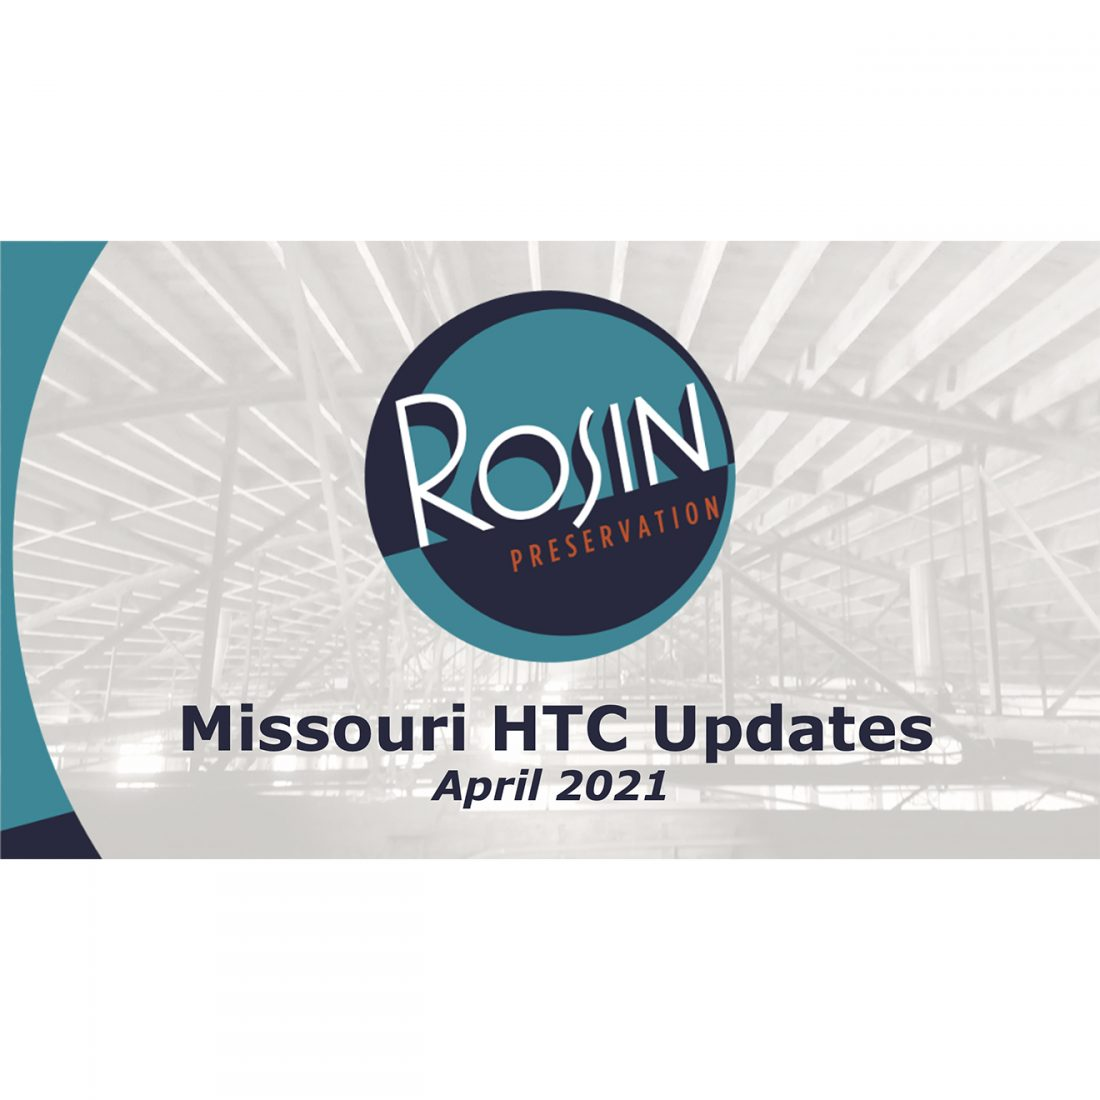 Rosin preservation logo with the title Missouri HTC Updates, April 2021